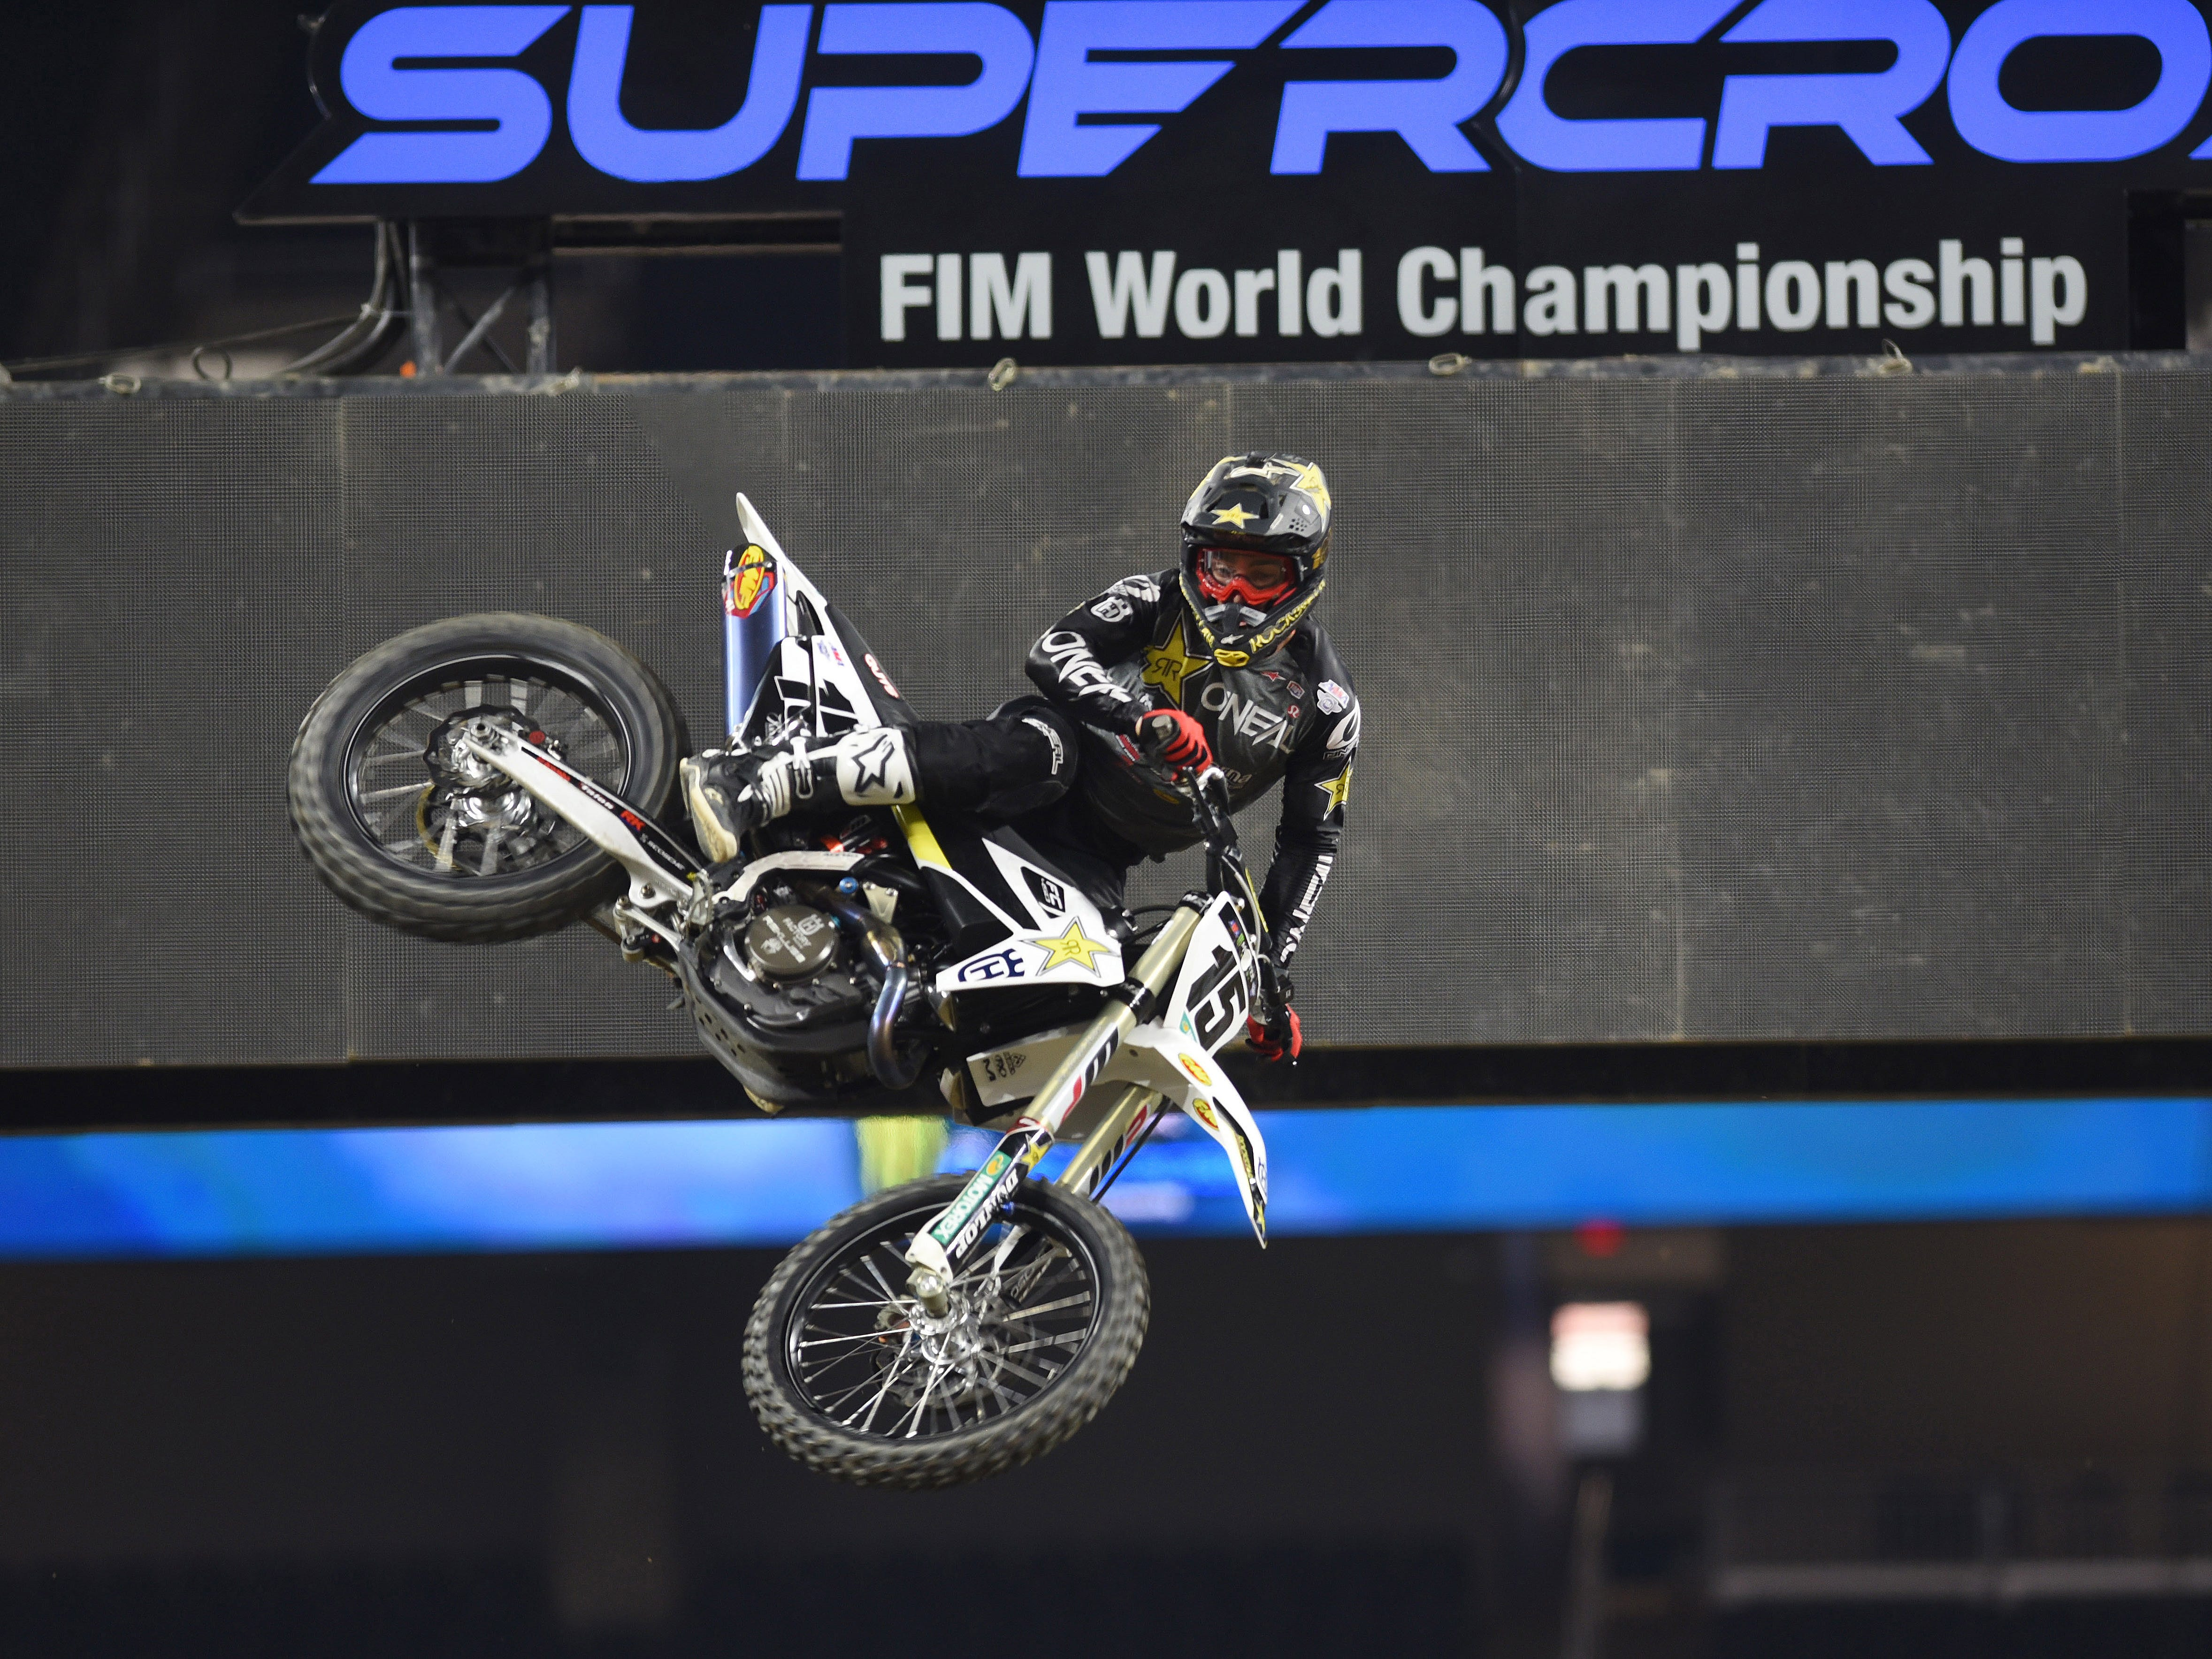 Top Supercross rider Dean Wilson (15) makes a statement as he flips his back wheel over a dirt mound for the 2019 Monster Energy Supercross at Ford Field in Detroit on Friday, February 22, 2019.